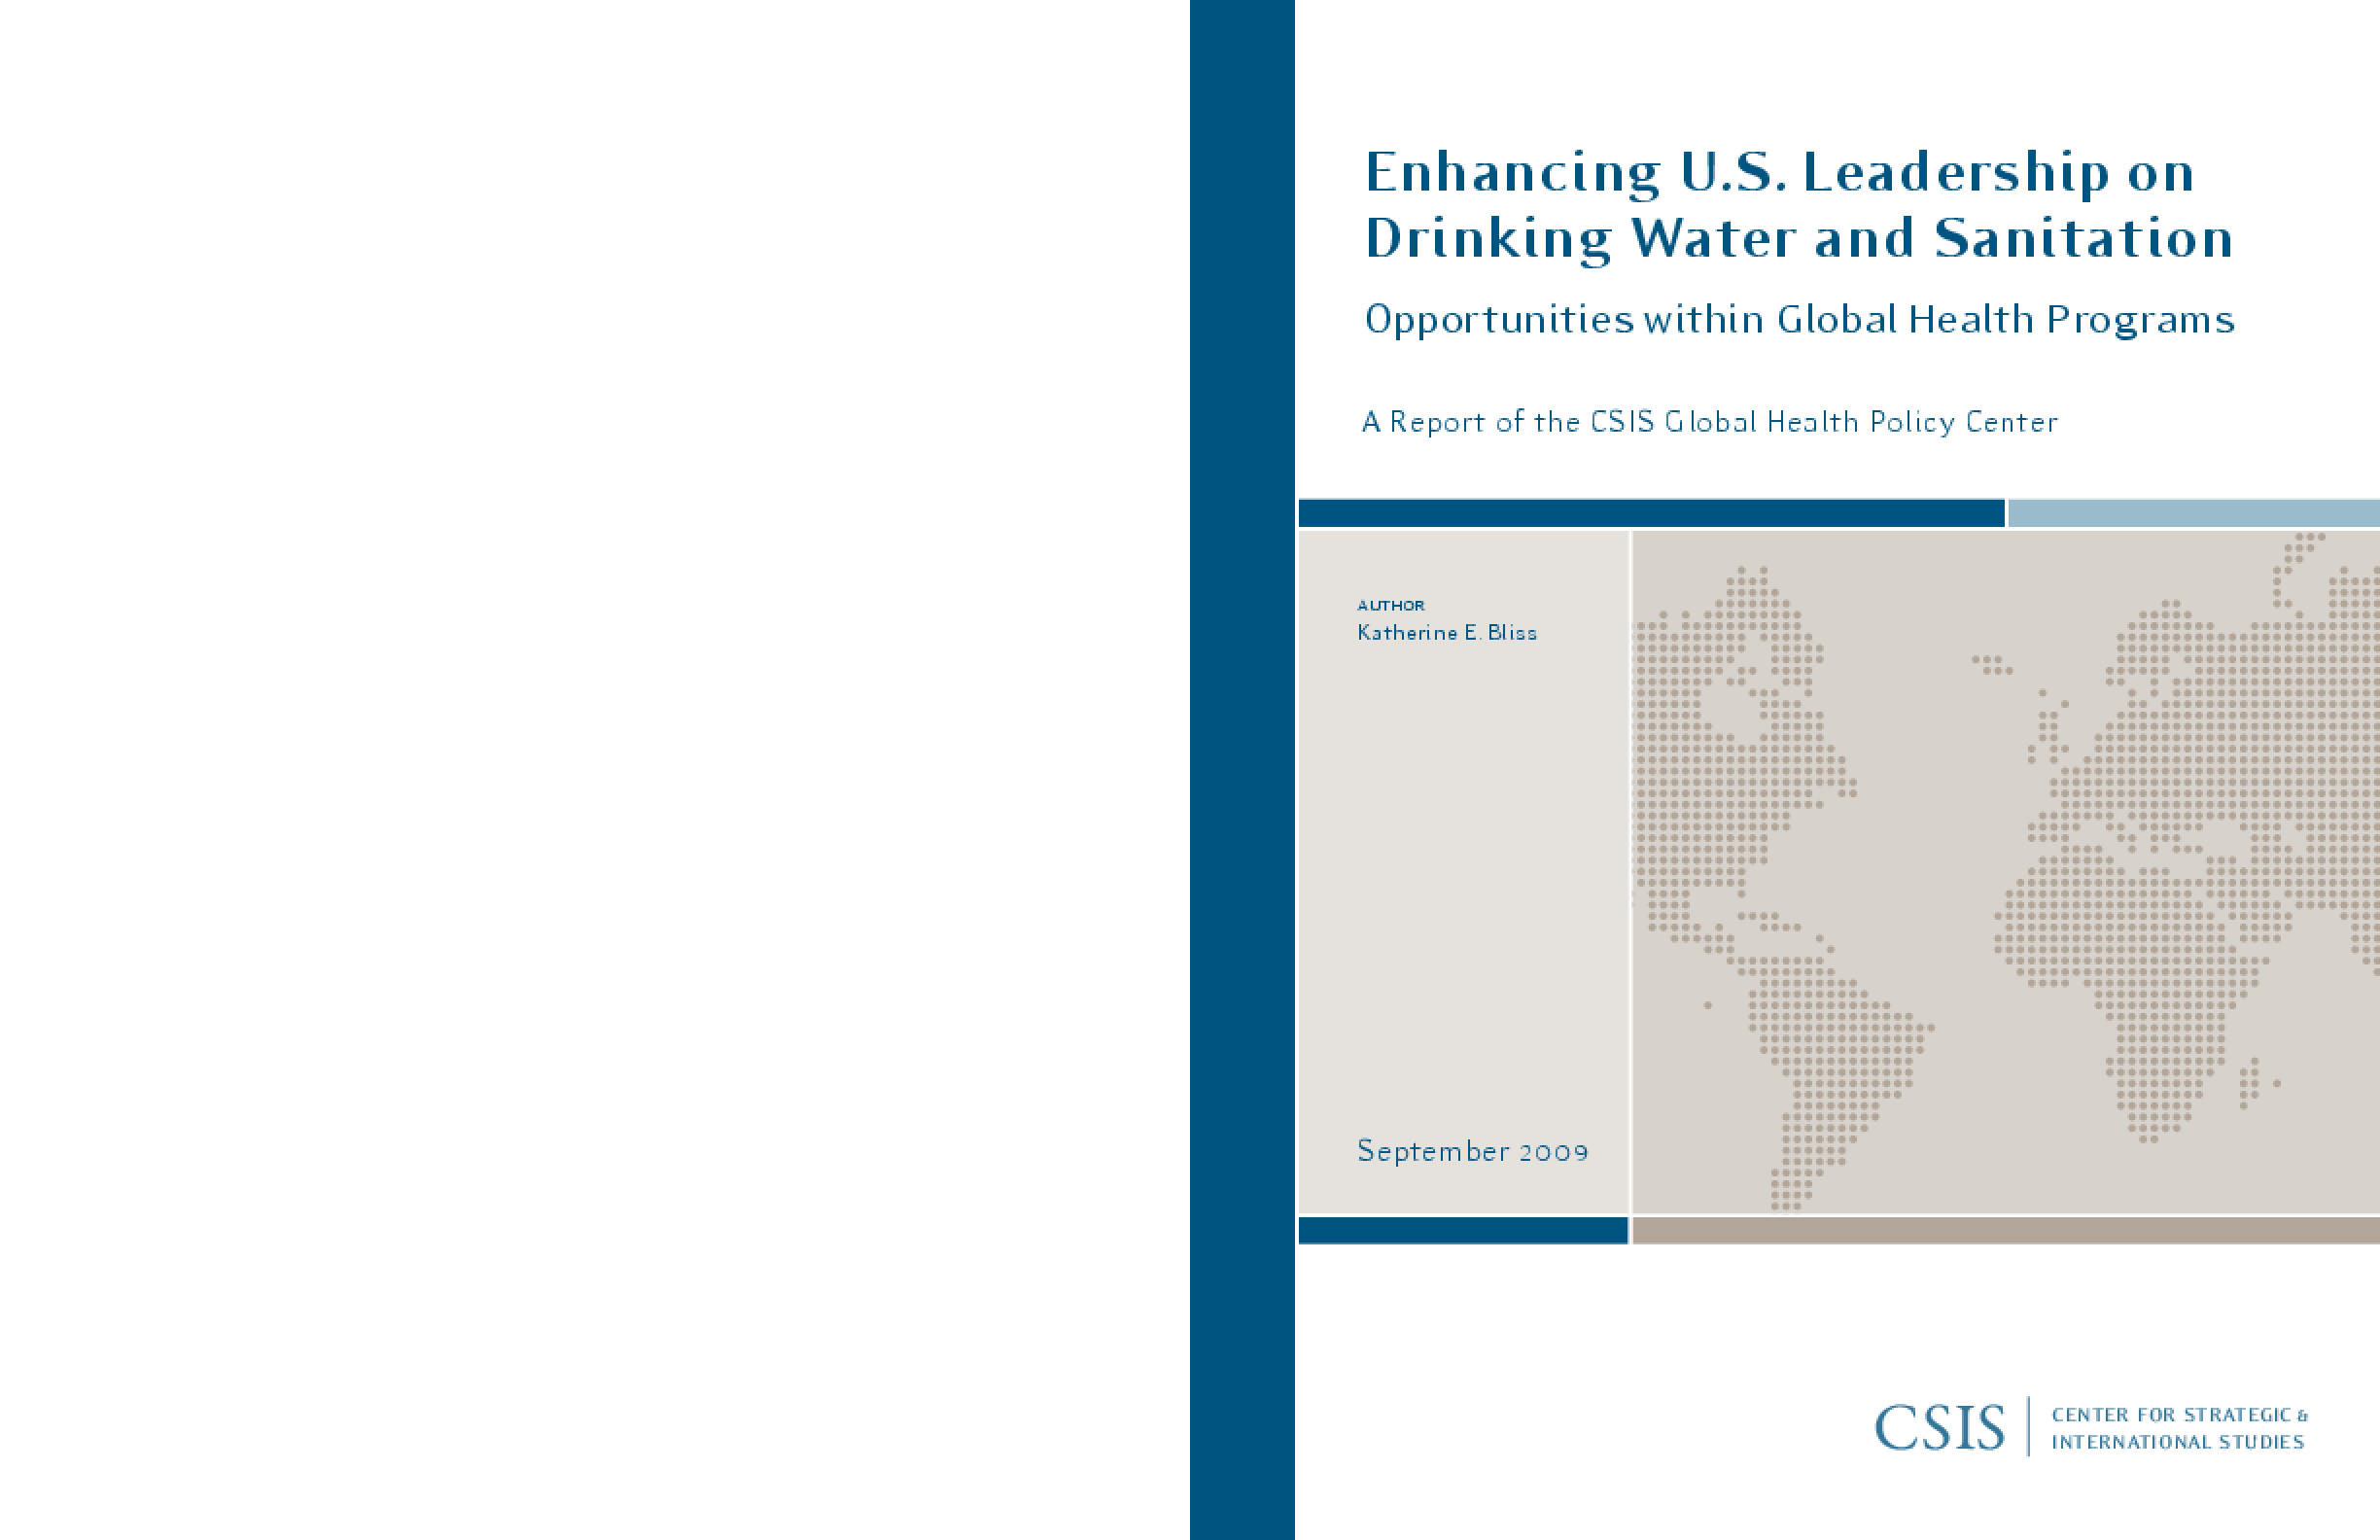 Enhancing U.S. Leadership on Drinking Water and Sanitation: Opportunities Within Global Health Programs